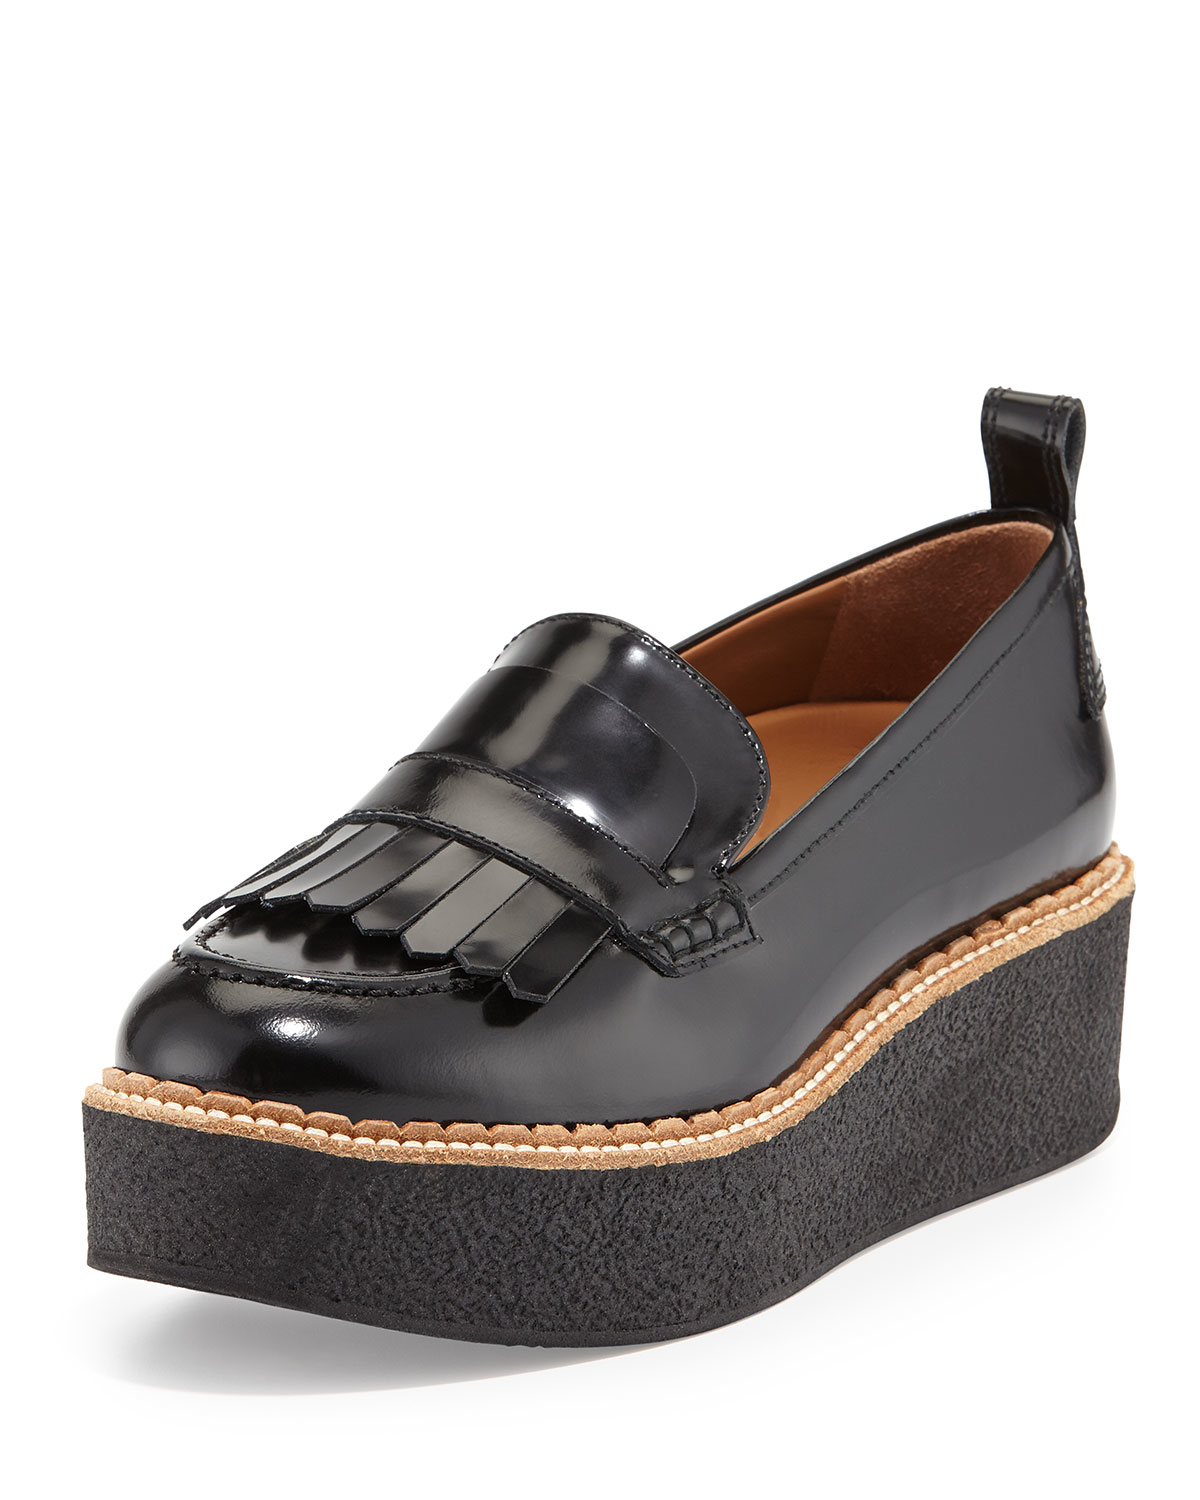 Flamingos Wellington Leather Fringe Platform Loafer In